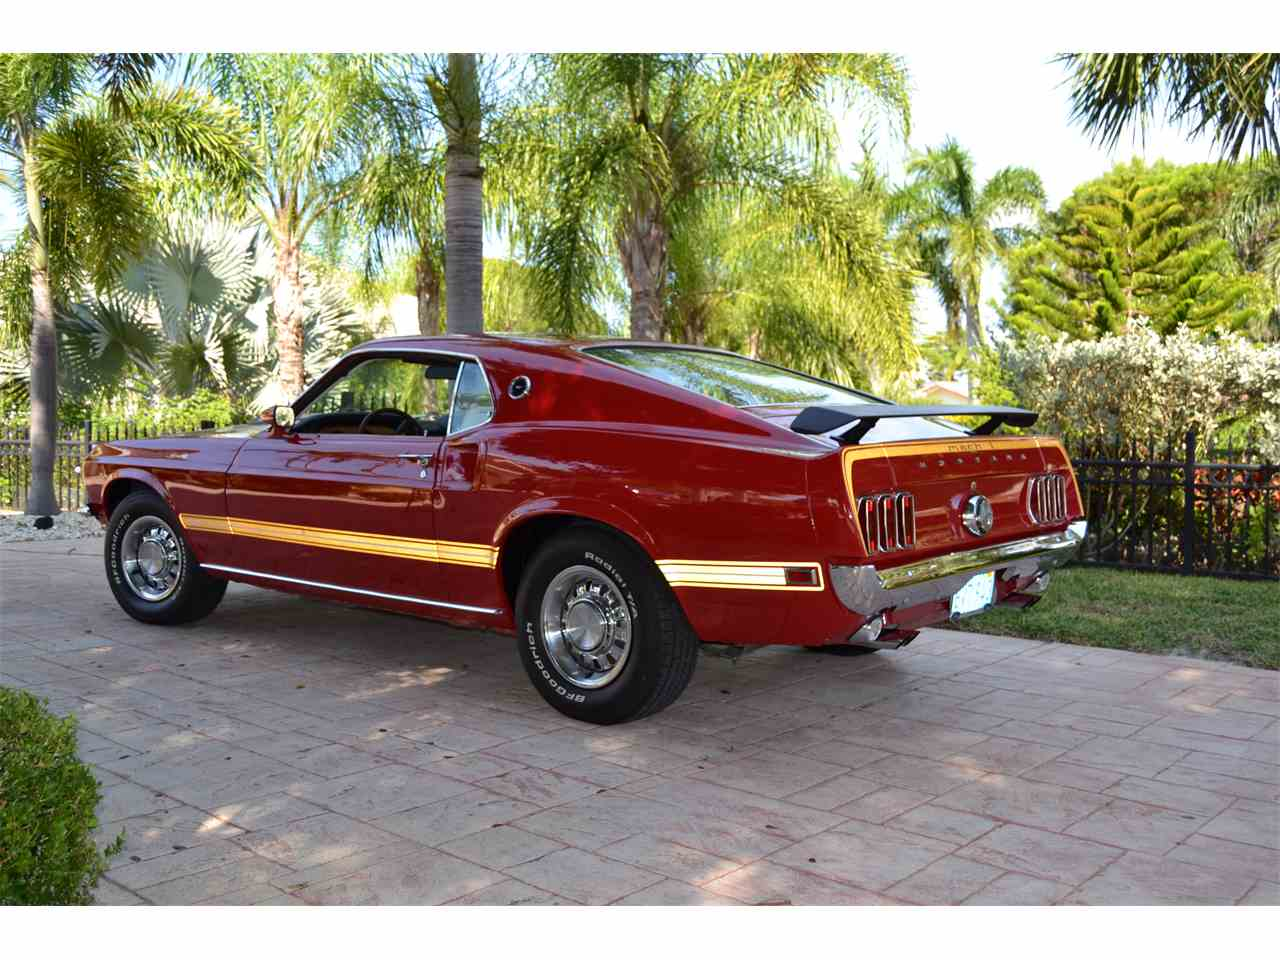 Large Picture of 1969 Ford Mustang Mach 1 - $68,500.00 - FQAH